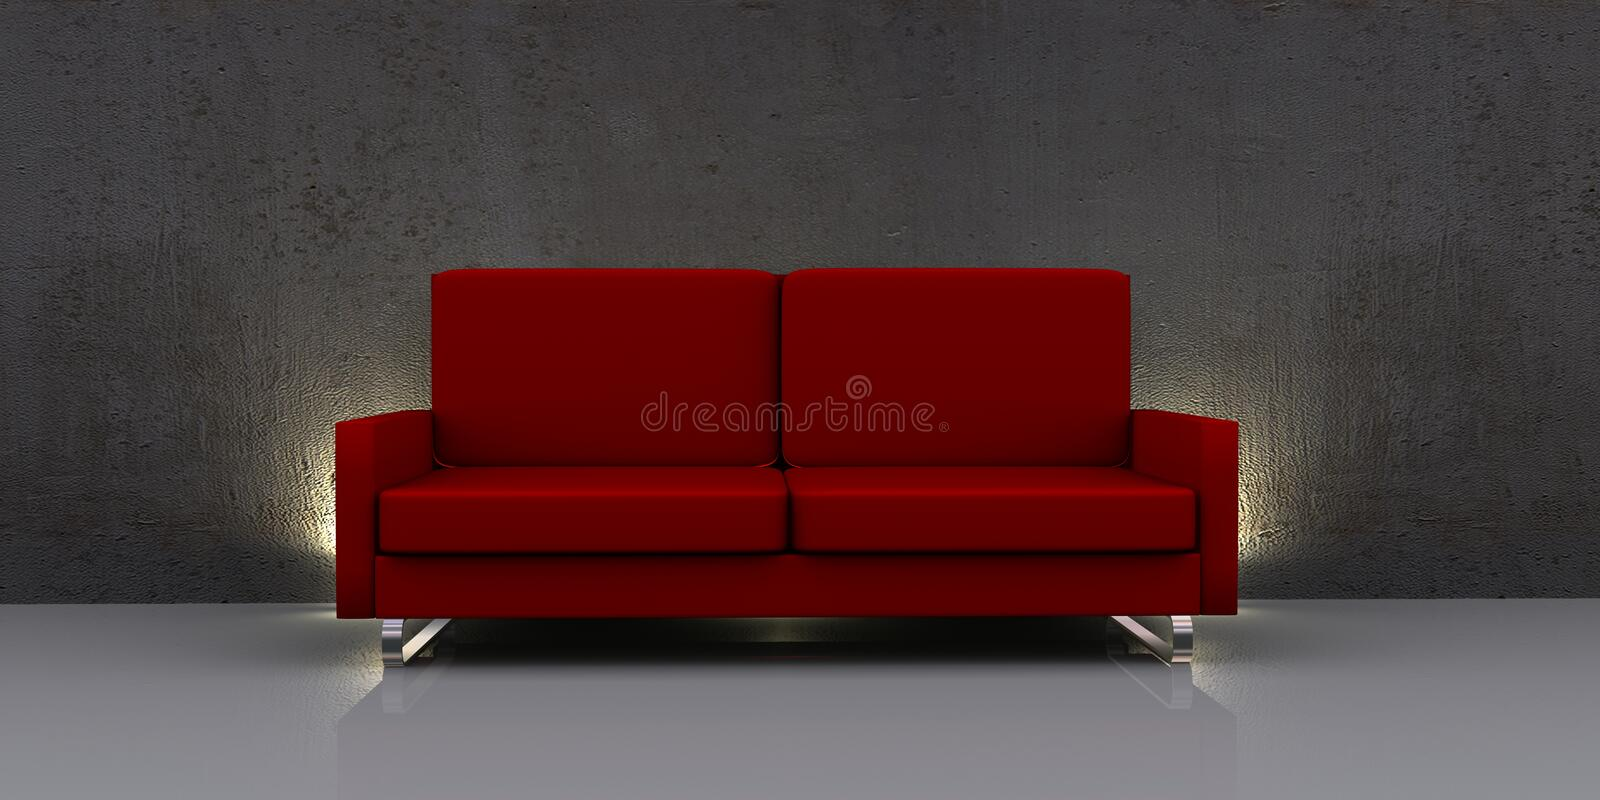 Sofa rouge moderne illustration de vecteur